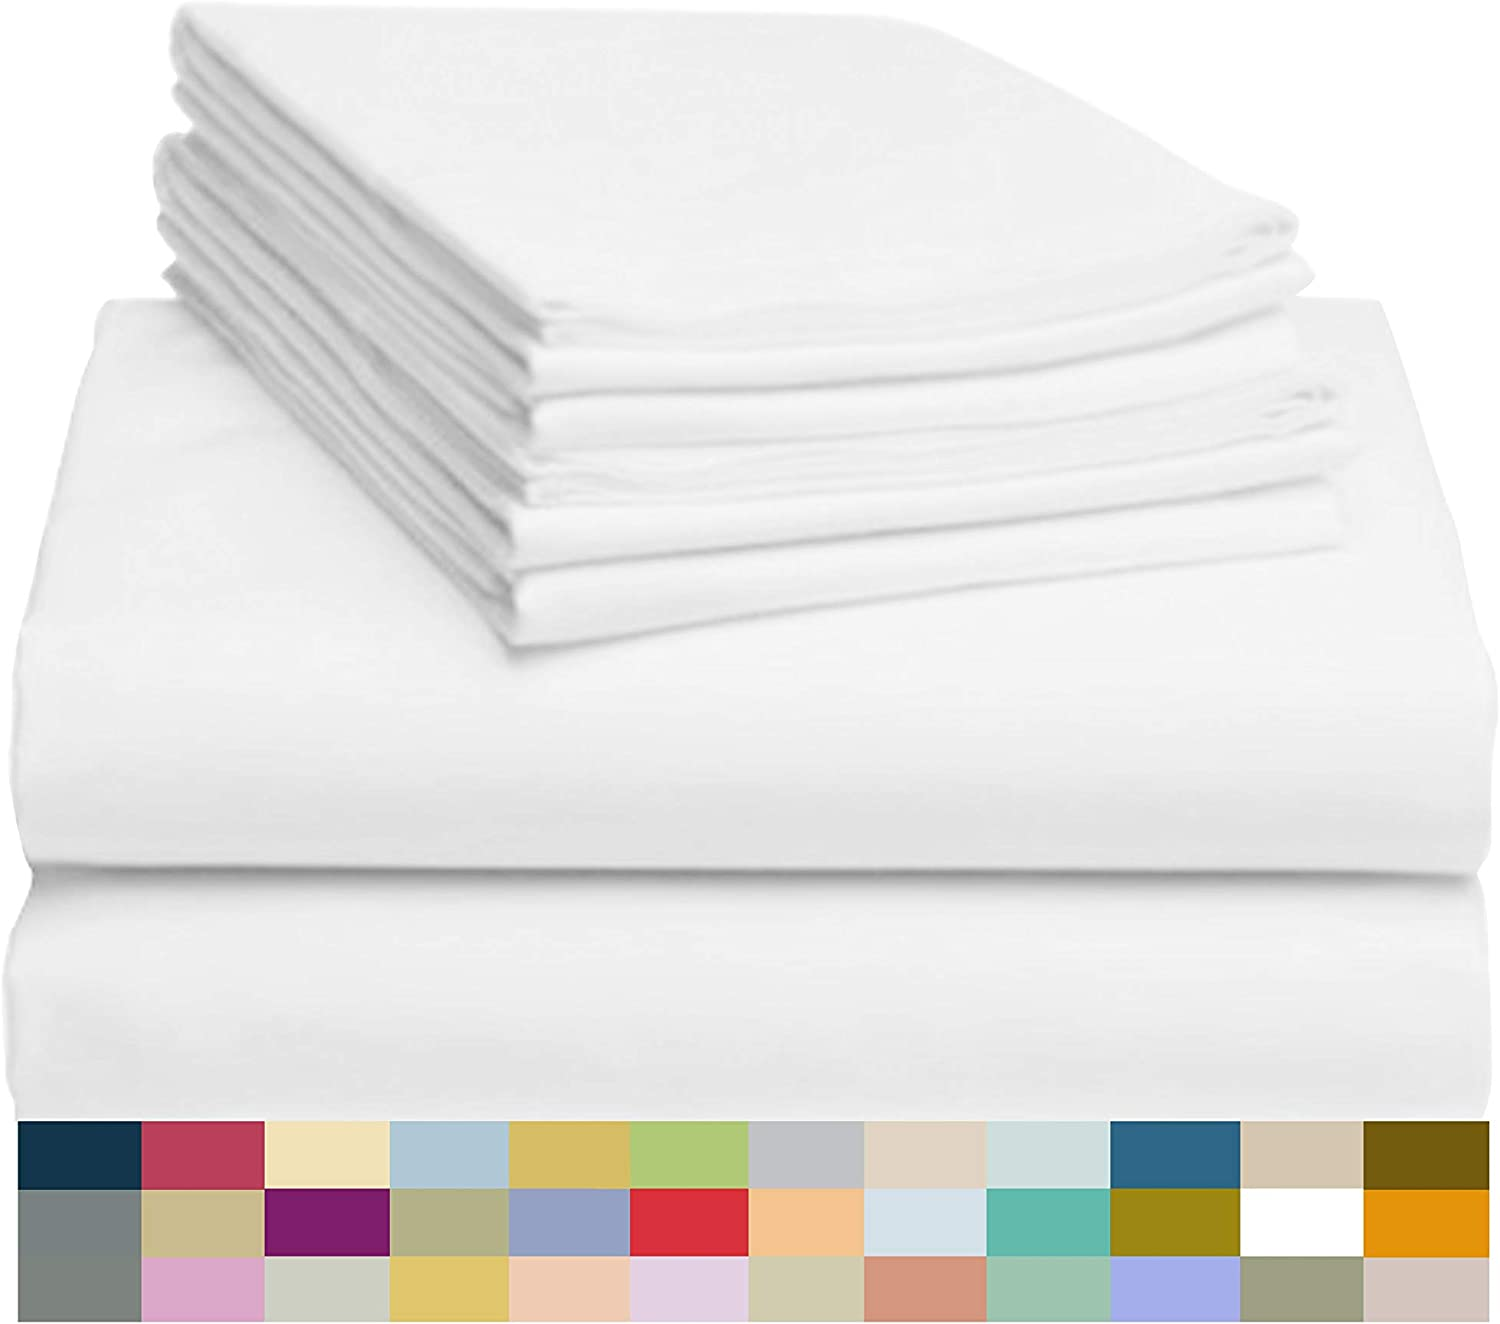 """LuxClub 6 PC Sheet Set Bamboo Sheets Deep Pockets 18"""" Eco Friendly Wrinkle Free Sheets Hypoallergenic Anti-Bacteria Machine Washable Hotel Bedding Silky Soft - White Queen: Home & Kitchen"""